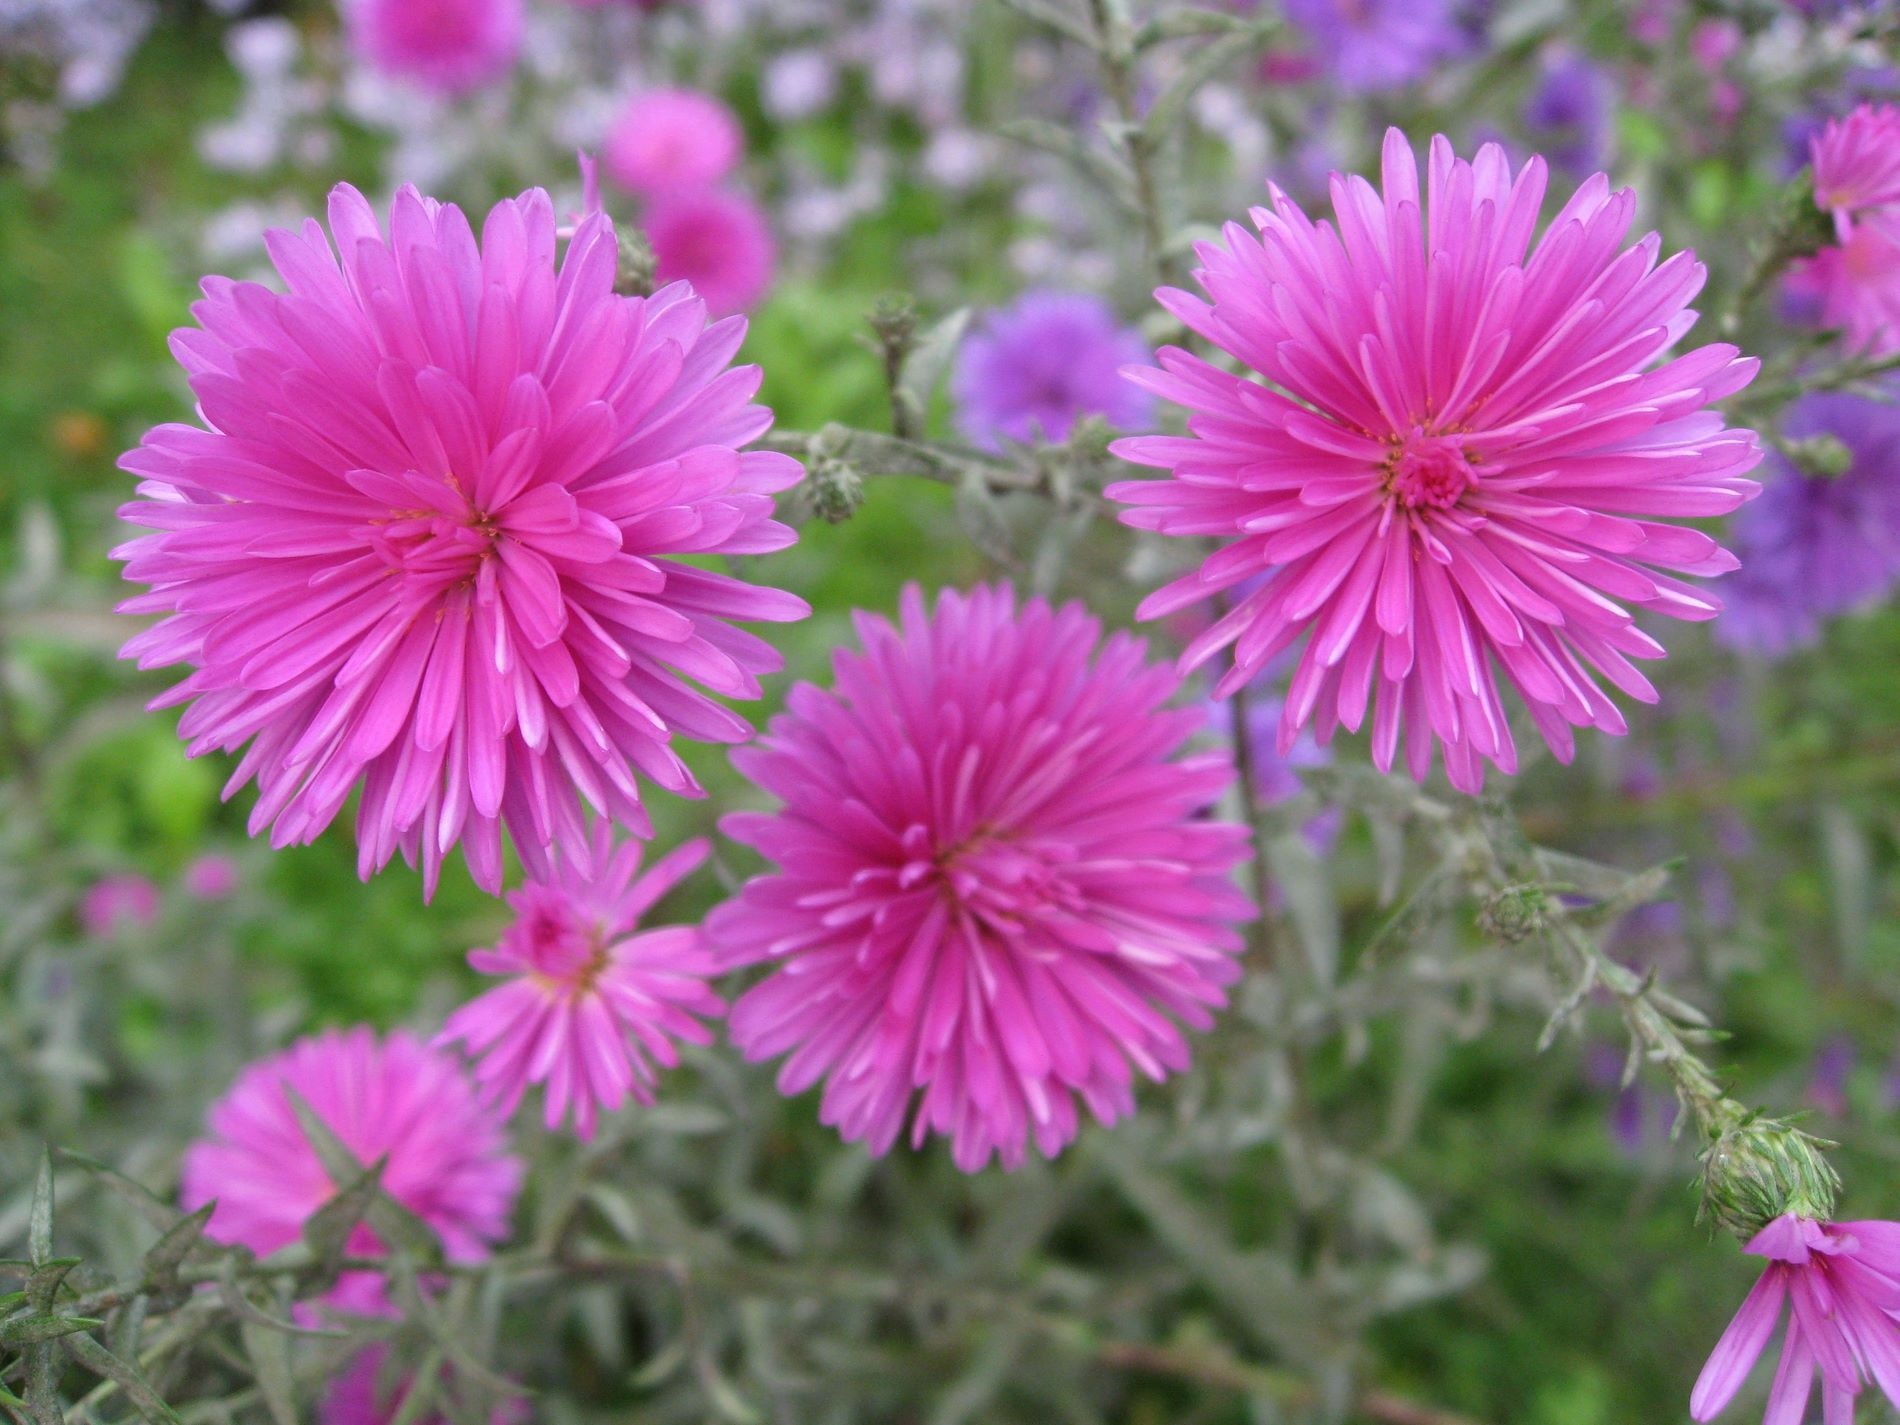 China Aster Flower Images